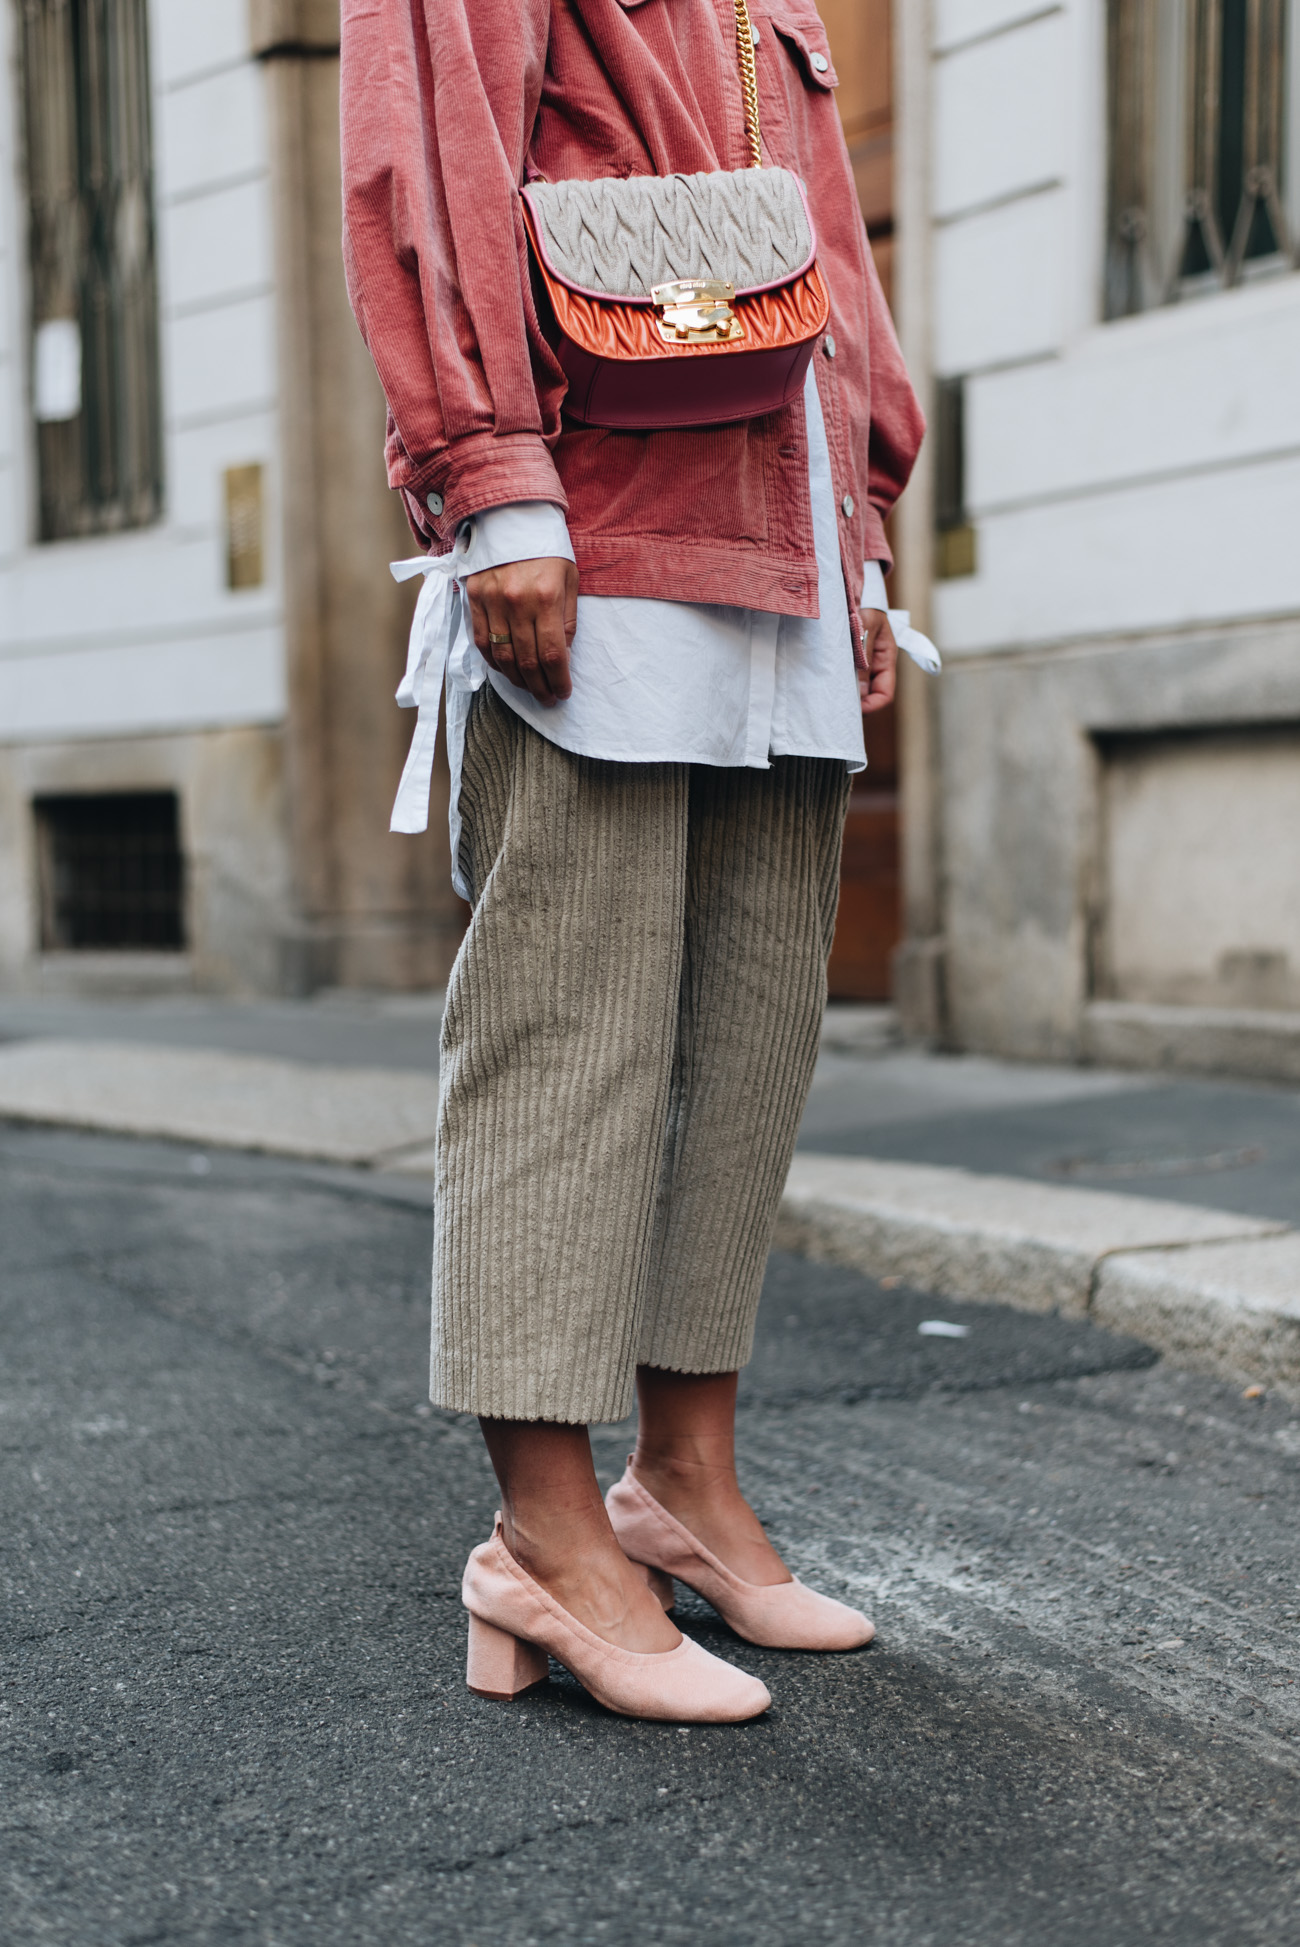 Streetstyle-layering-look-herbst-winter-mode-trends-2017-cord-material-fashiioncarpet-nina-schwichtenberg